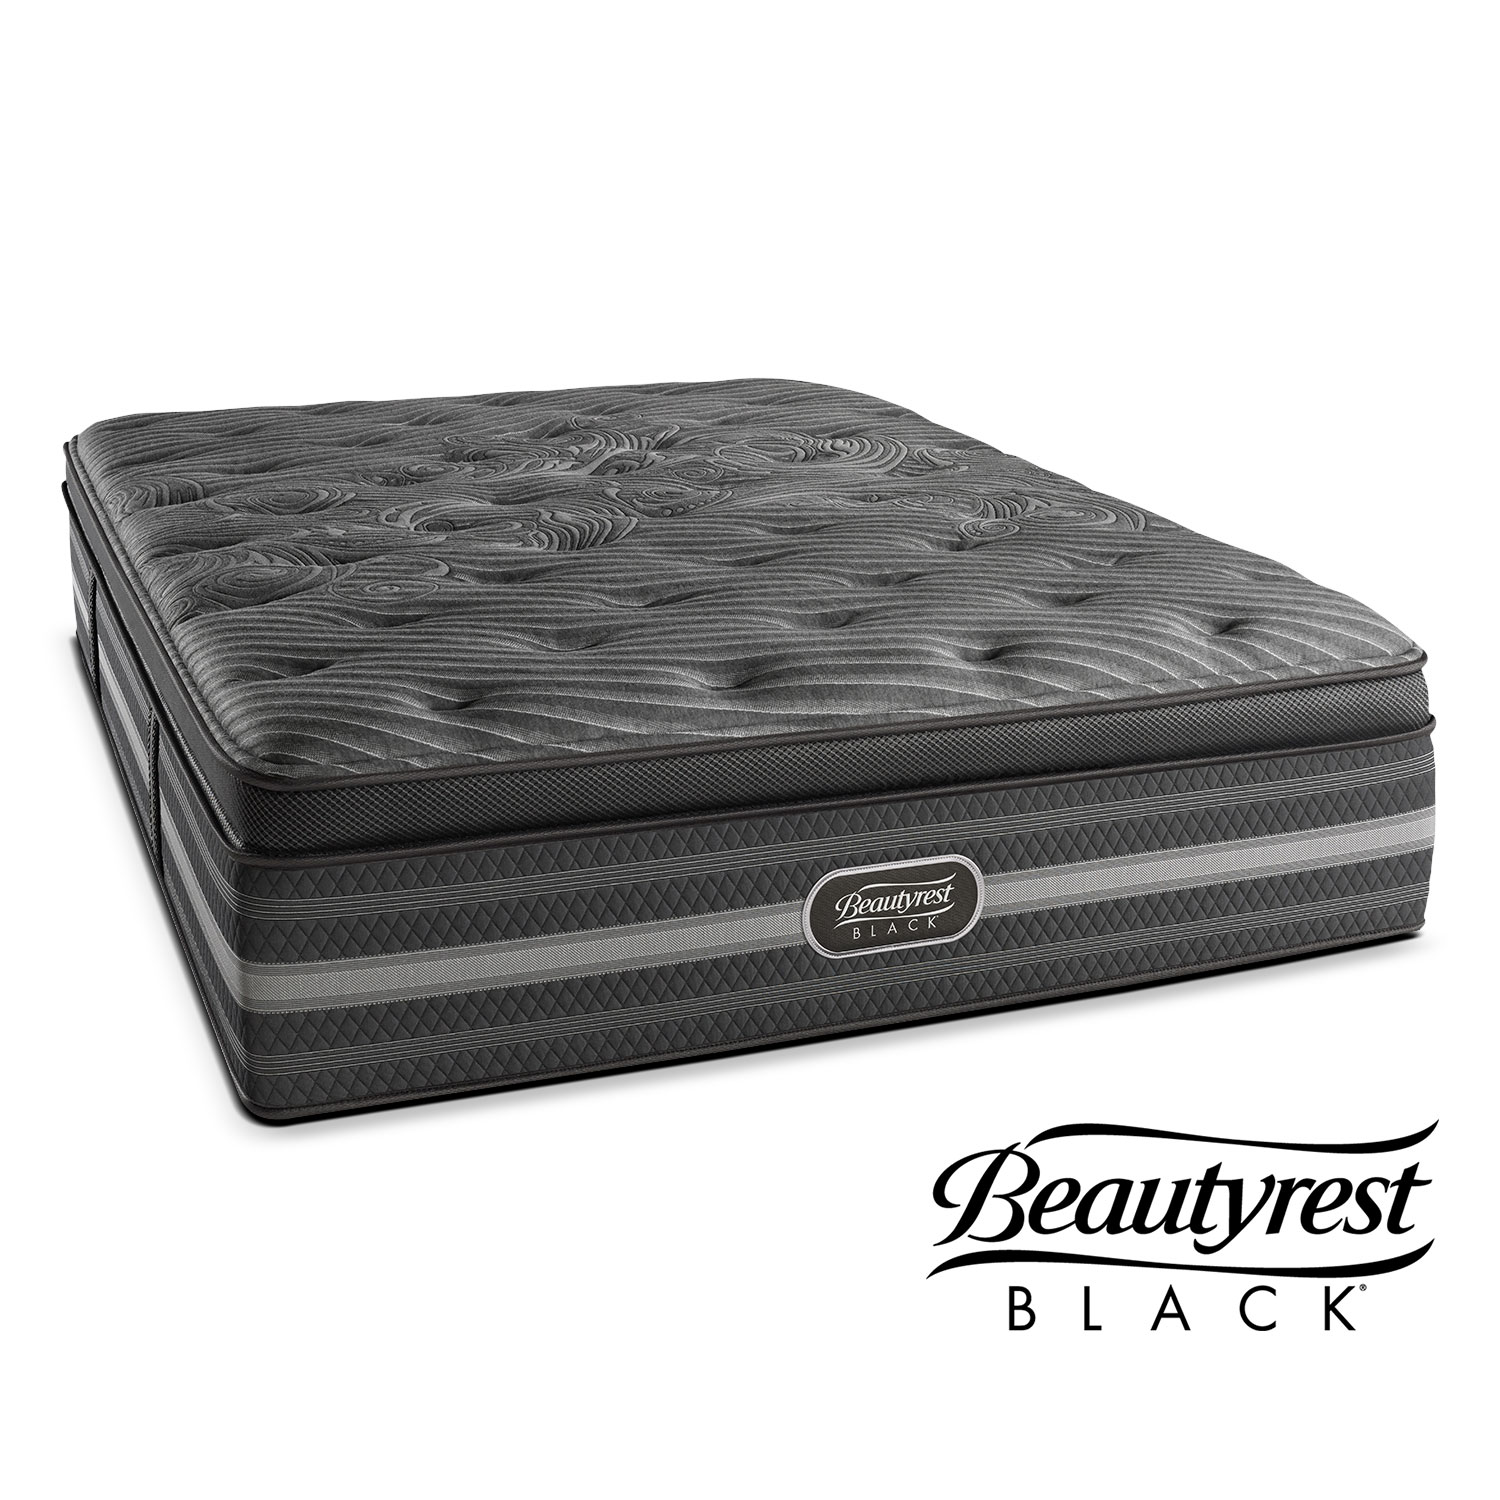 Merveilleux Natasha Plush Mattress By Beautyrest Black